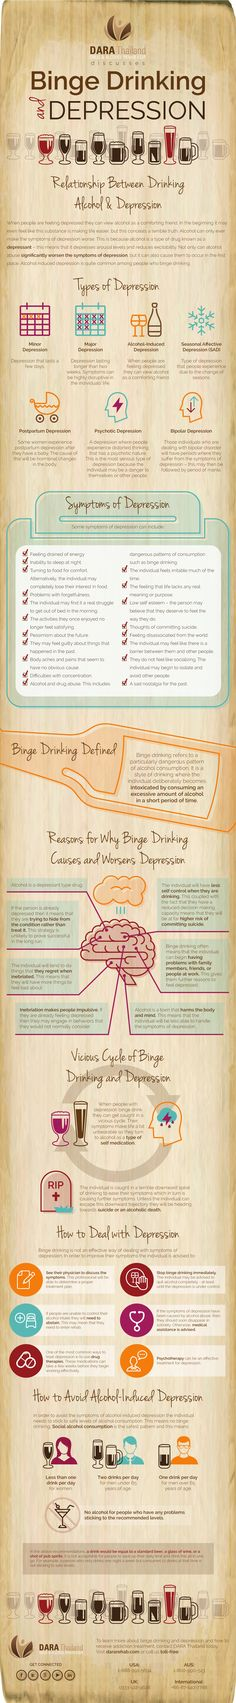 Binge drinking and depression go together. Whether a person first began drinking in order to deal with their depression or developed depression after they started binge drinking, their treatment should be the same: a path of therapeutic intervention based on their current struggles as they strive for sobriety and move toward a brighter future.